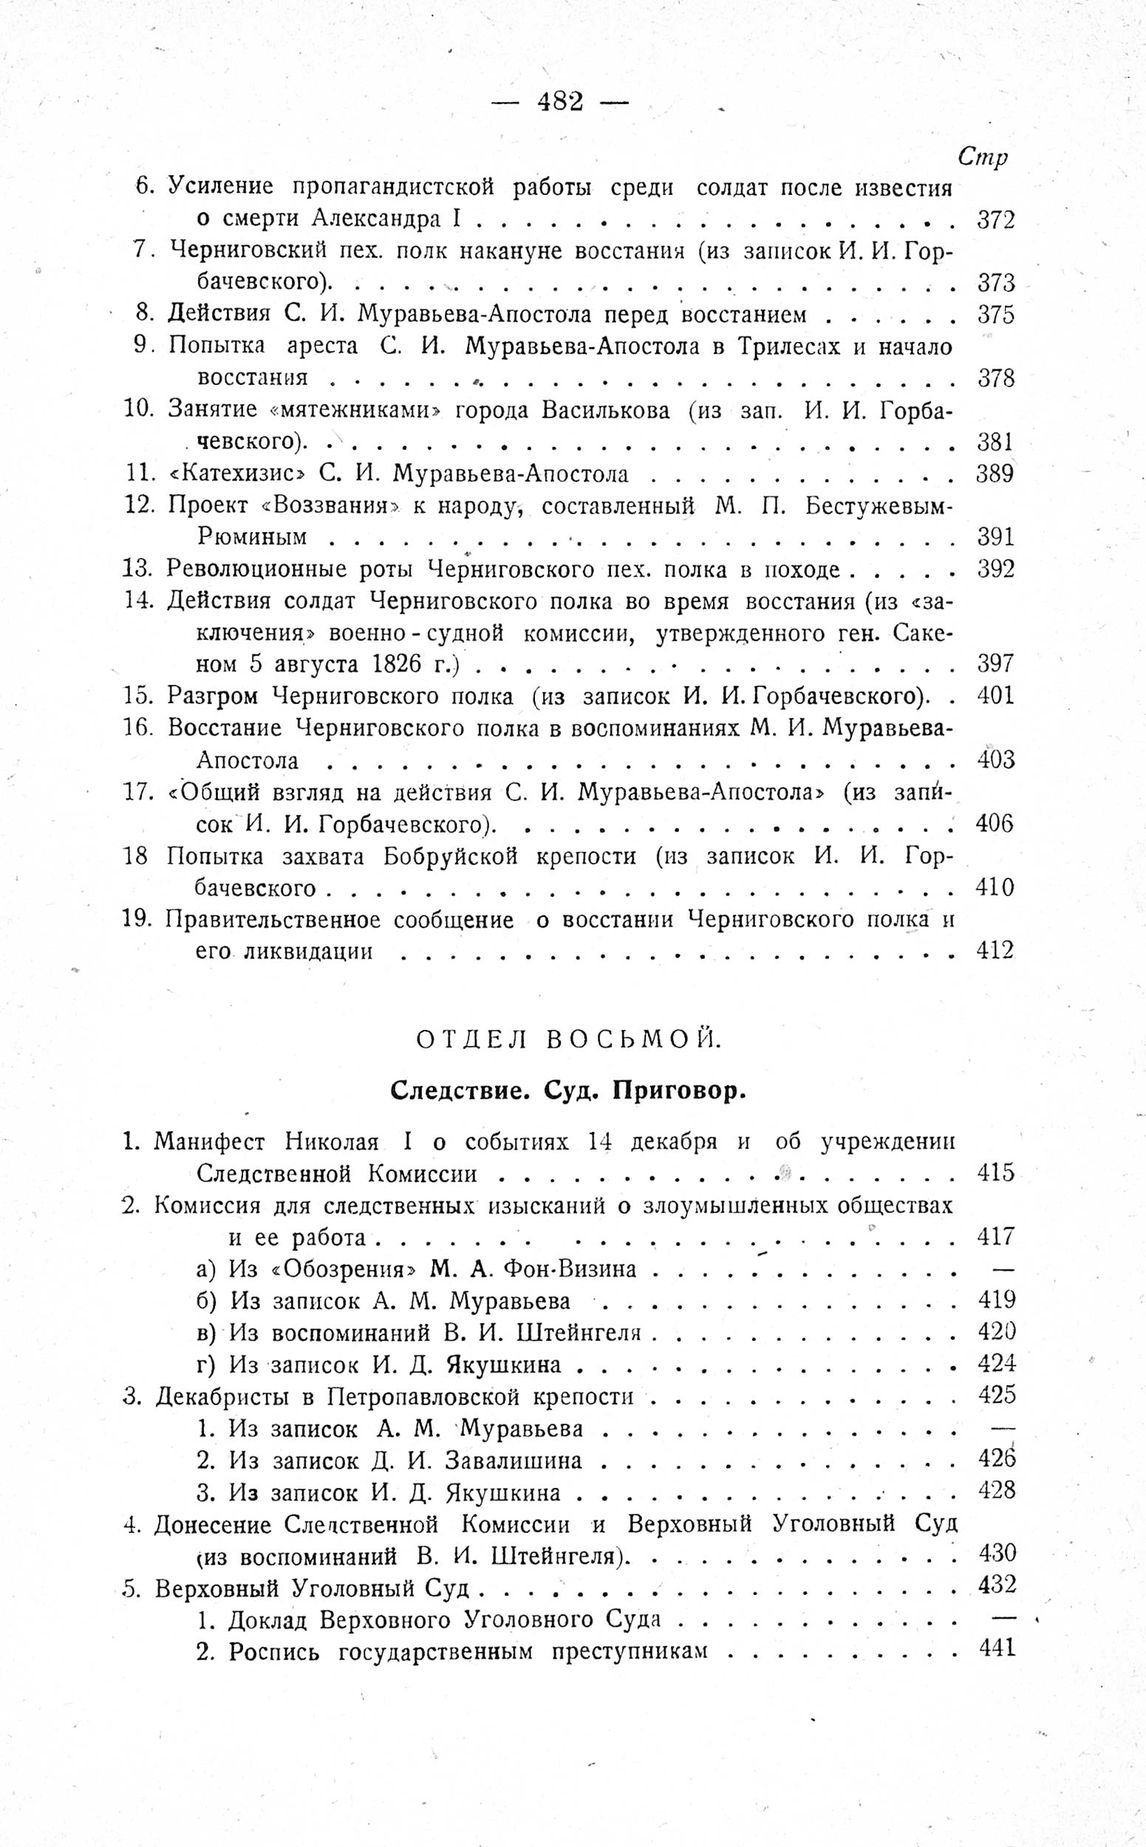 http://elib.shpl.ru/pages/626065/zooms/7